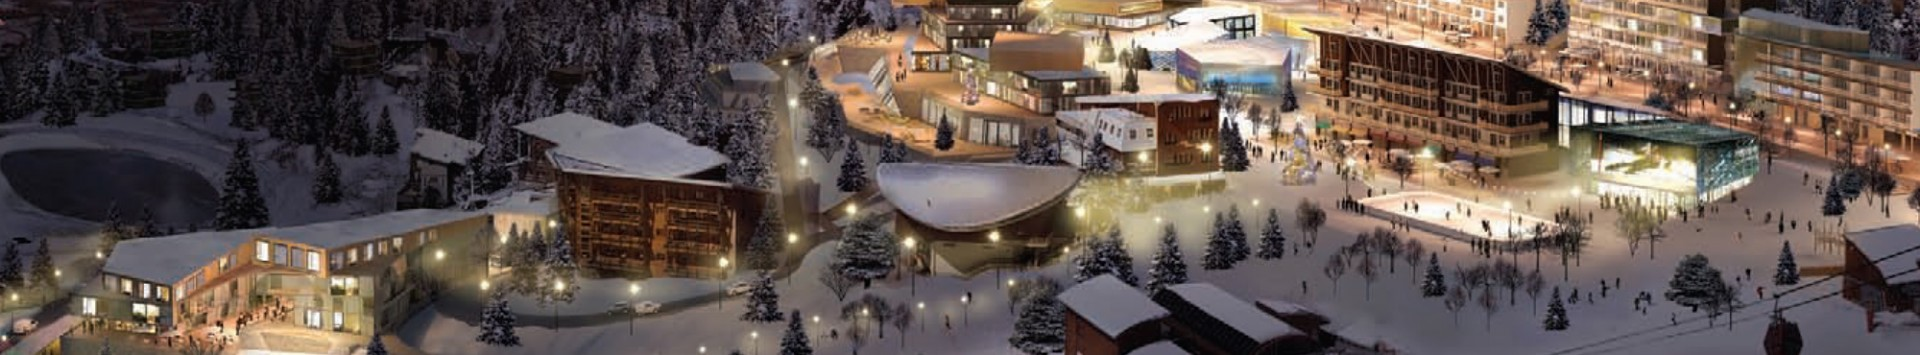 Chamrousse urban planning project 2030